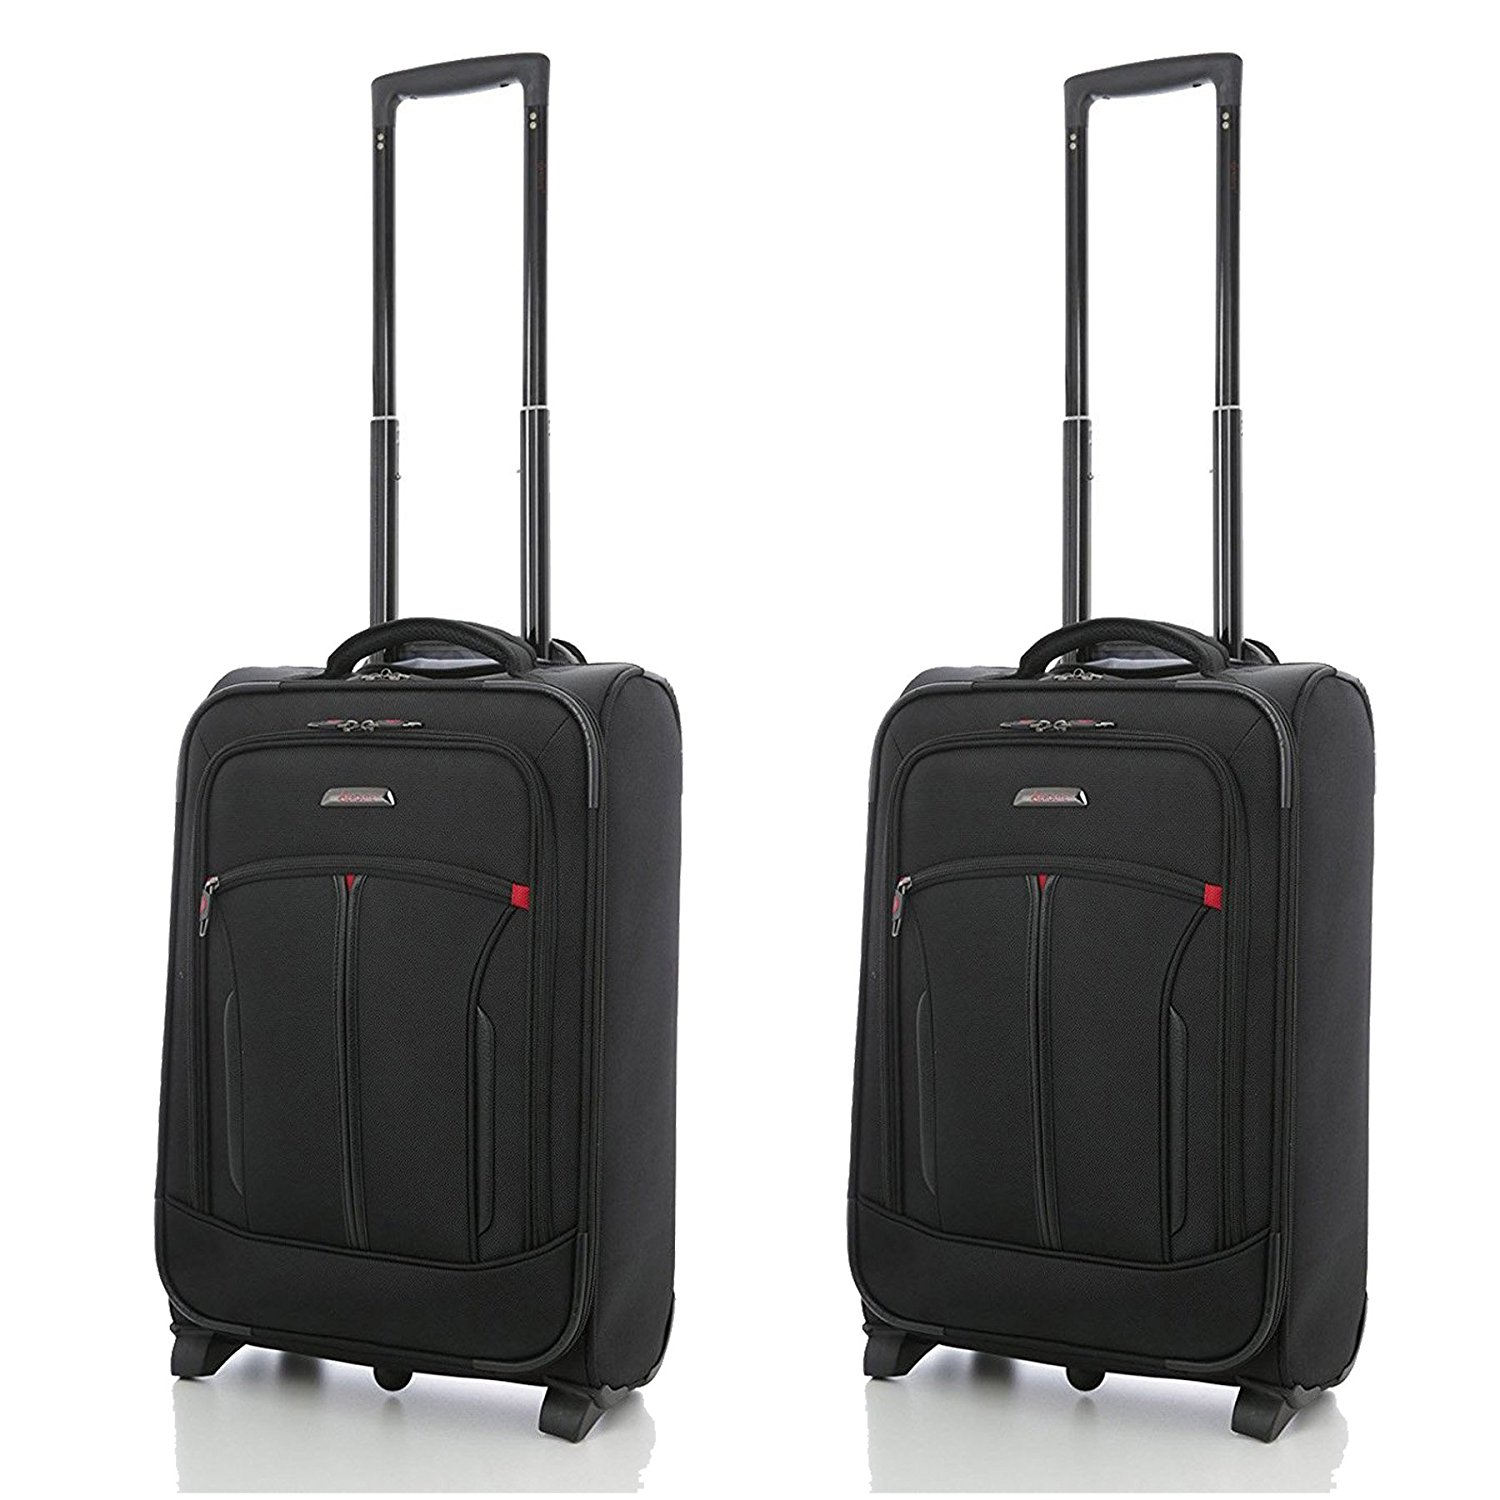 "Aerolite 21""³ Executive Cabin Luggage with Laptop Pocket (2 x Black)"